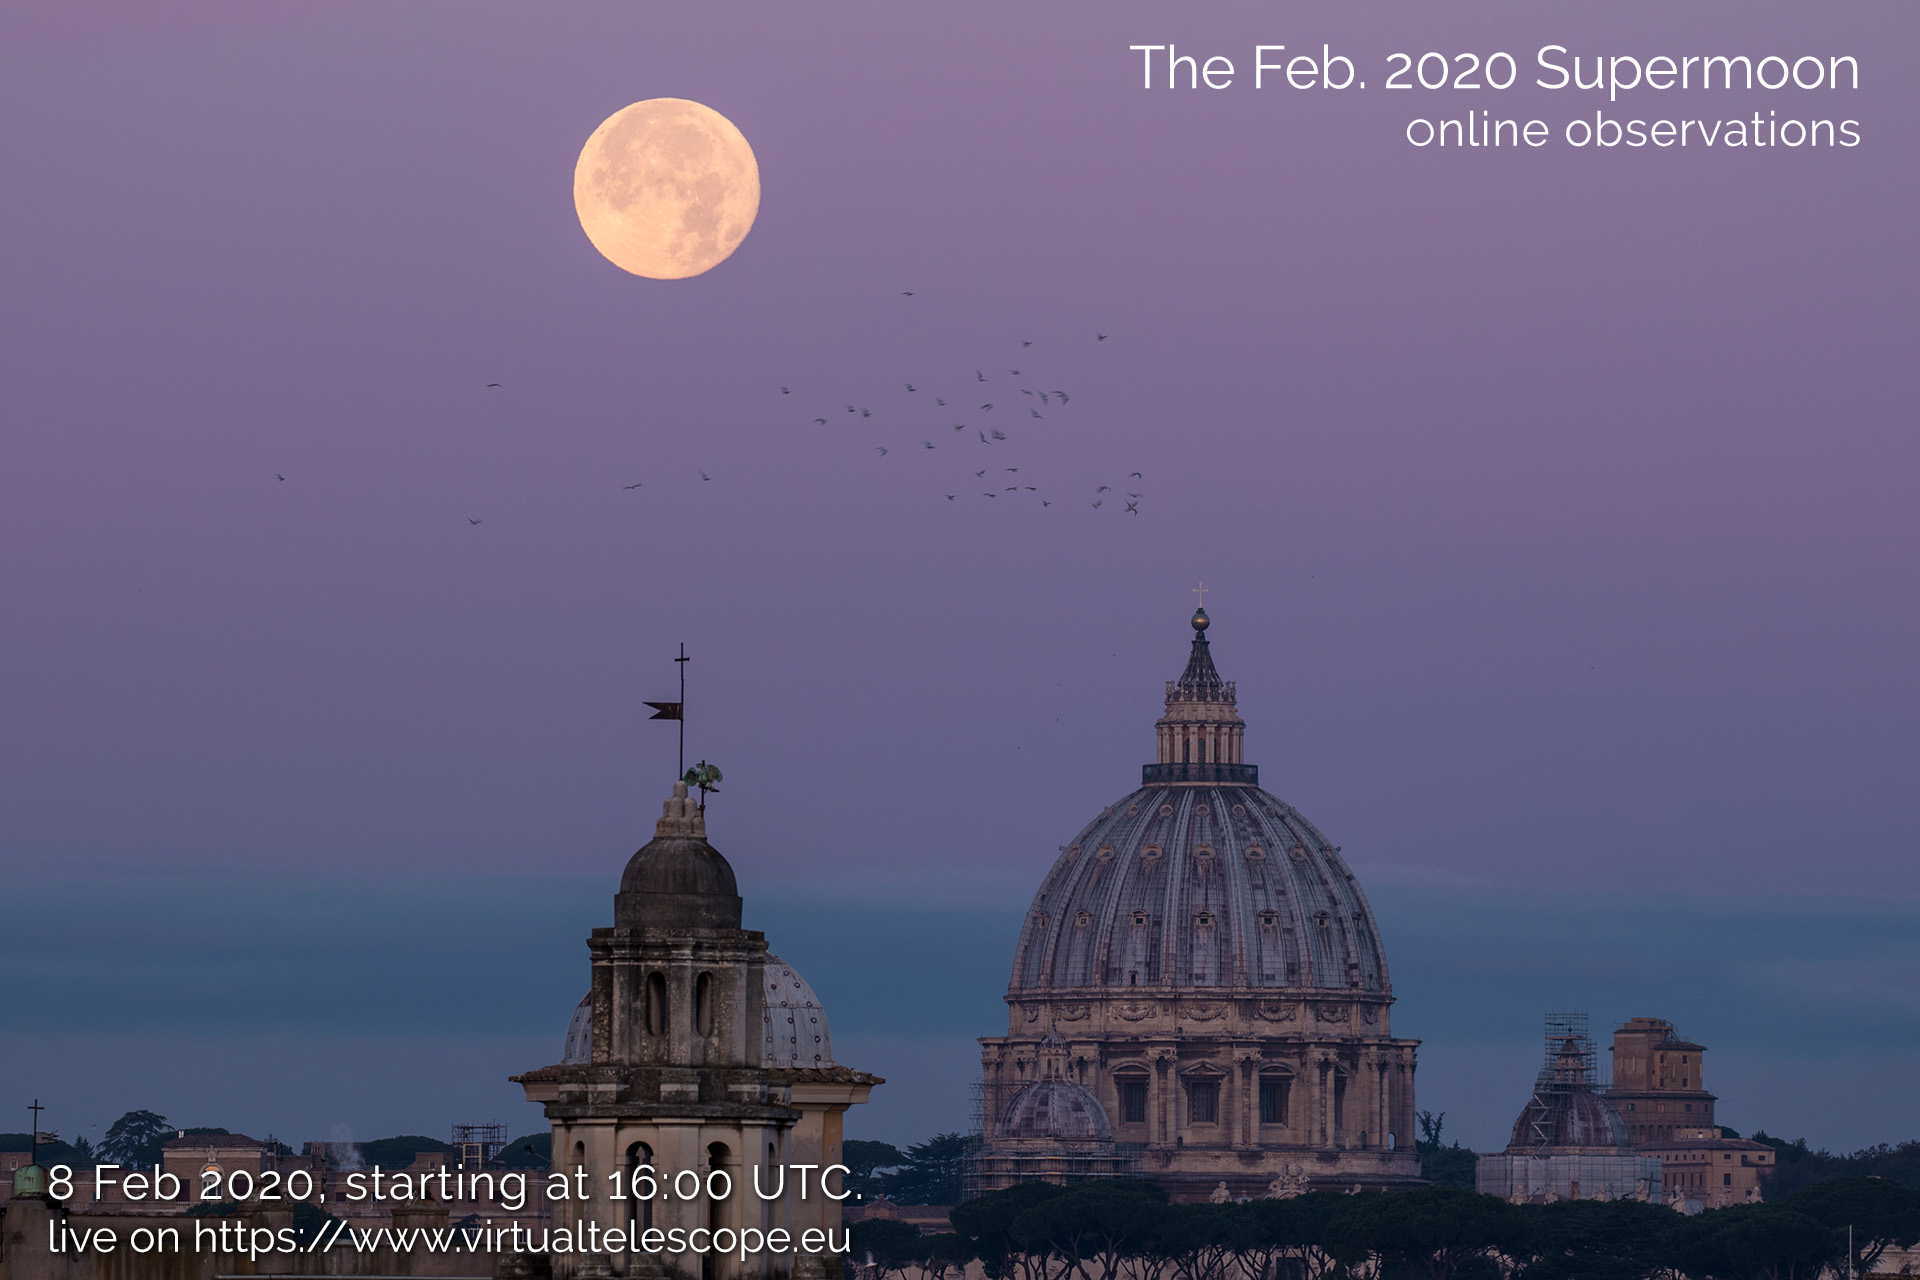 Feb. 2020 Supermoon: poster of the event